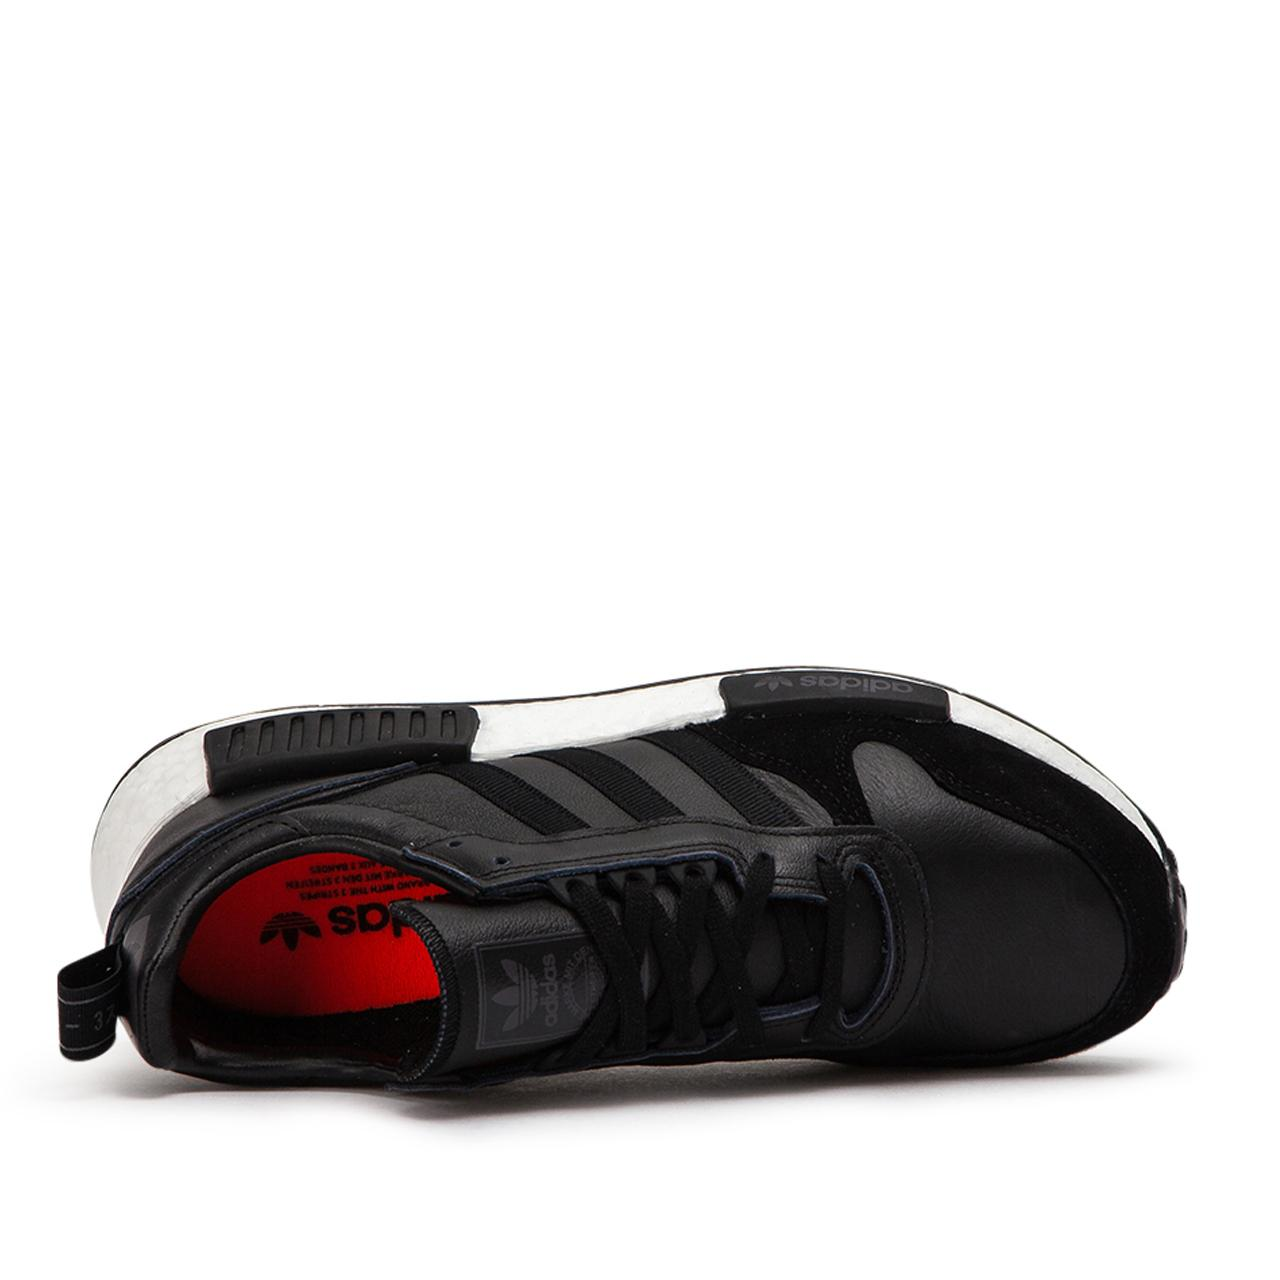 6d5550ce0a424 Adidas - Black Rising Star X R1 for Men - Lyst. View fullscreen